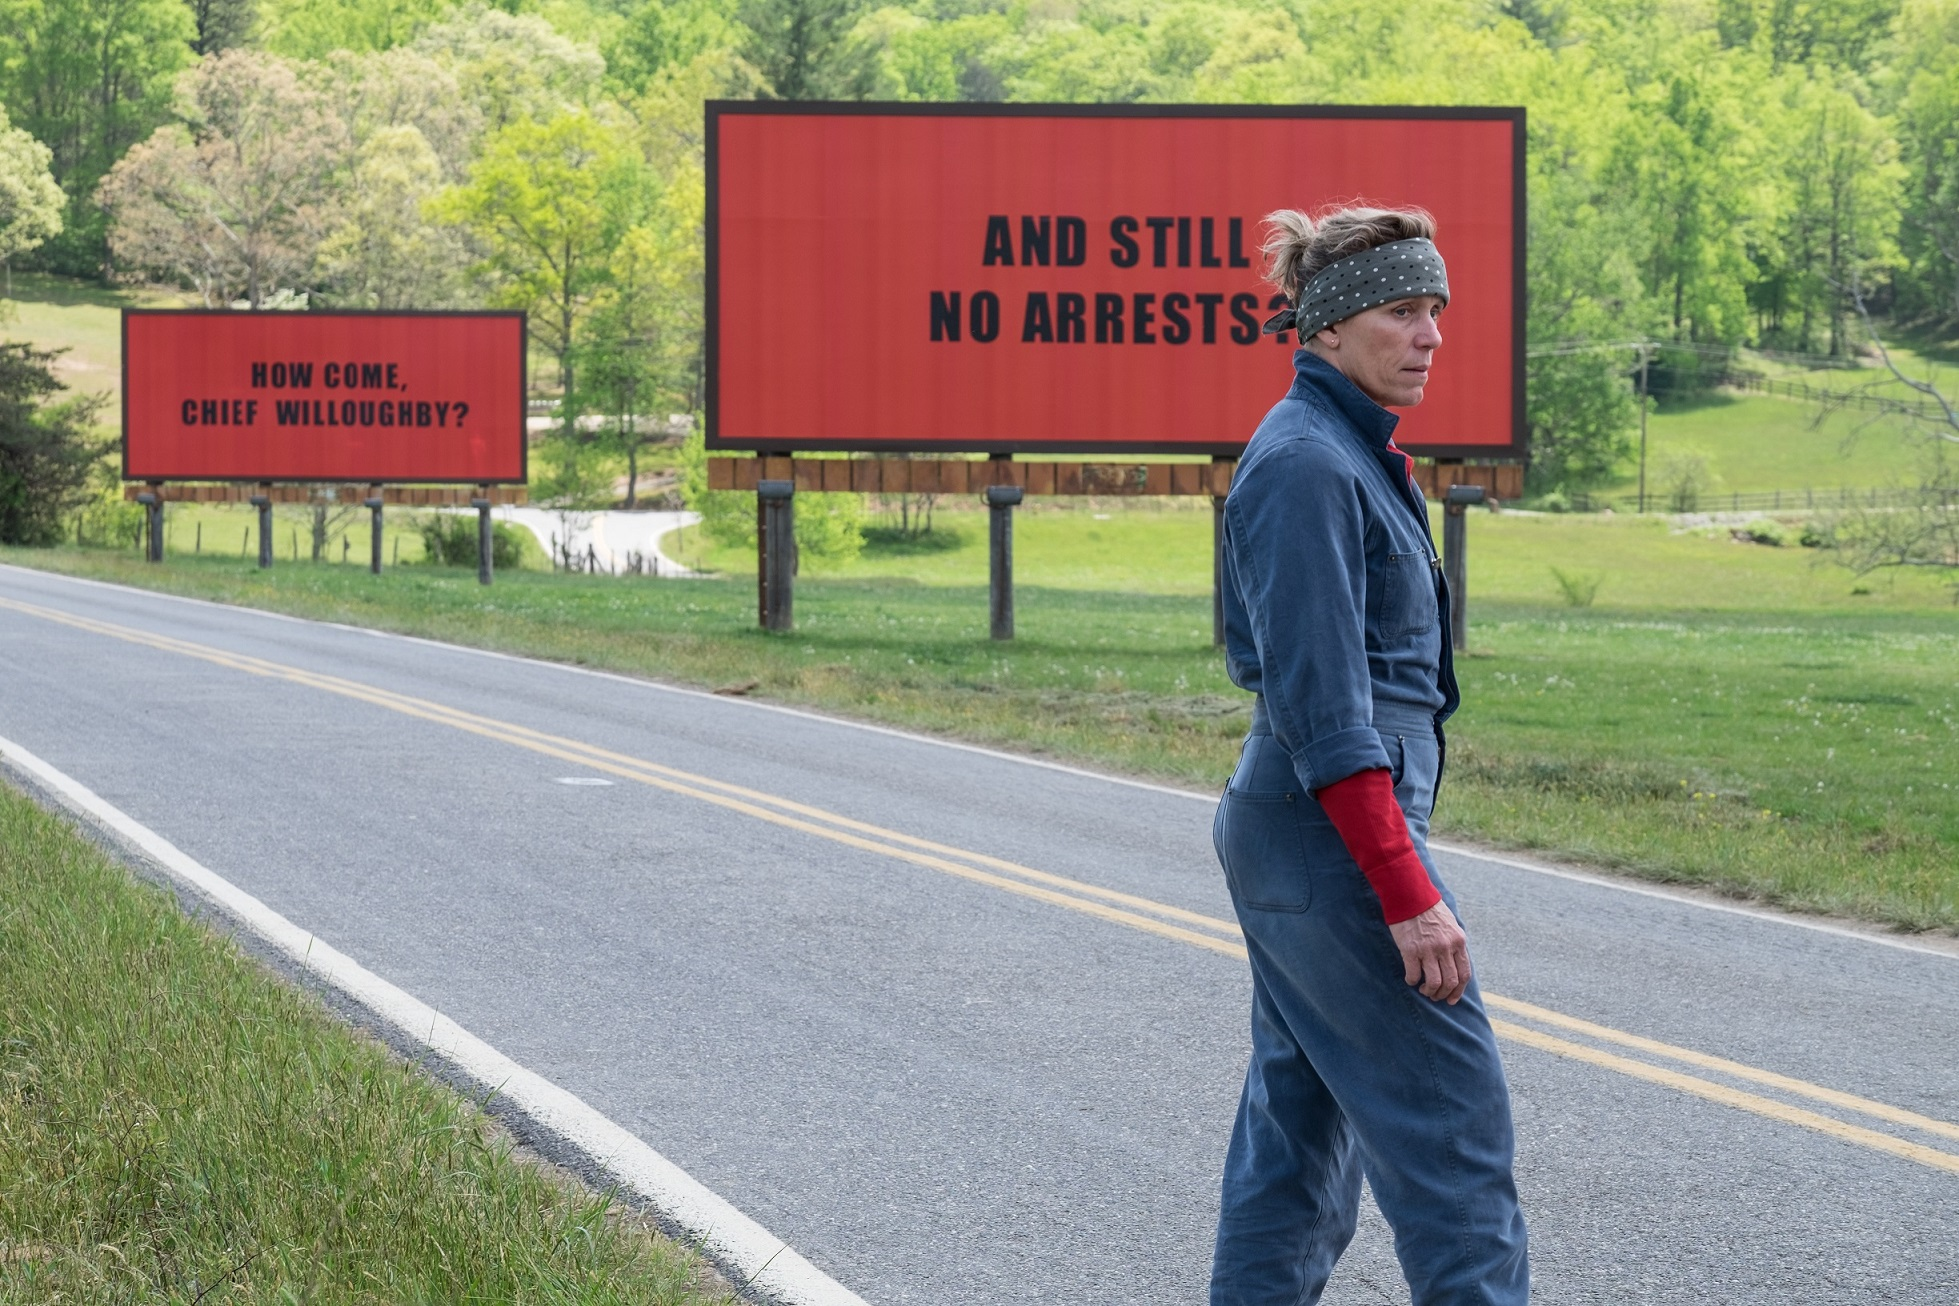 'Three Billboards Outside Ebbing, Missouri' is an acclaimed film from Academy Award winning British filmmaker Martin McDonagh.